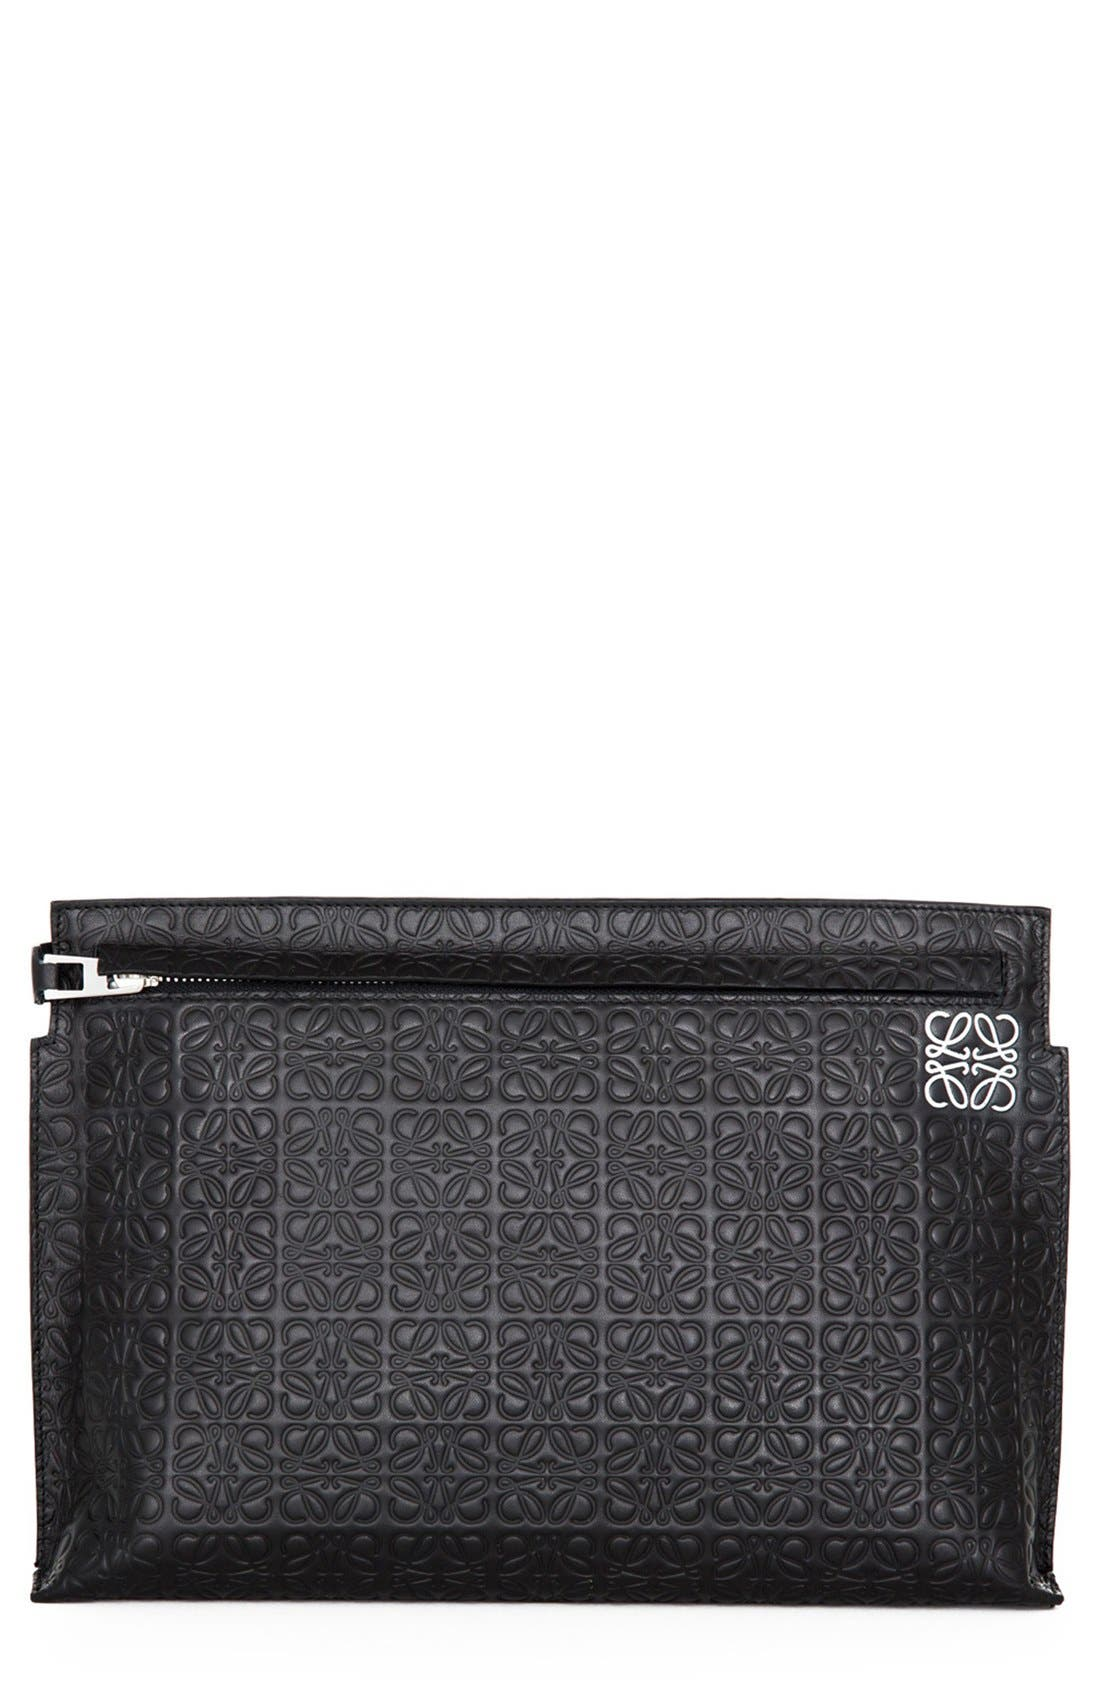 Alternate Image 1 Selected - Loewe Large Logo Embossed Calfskin Leather Pouch